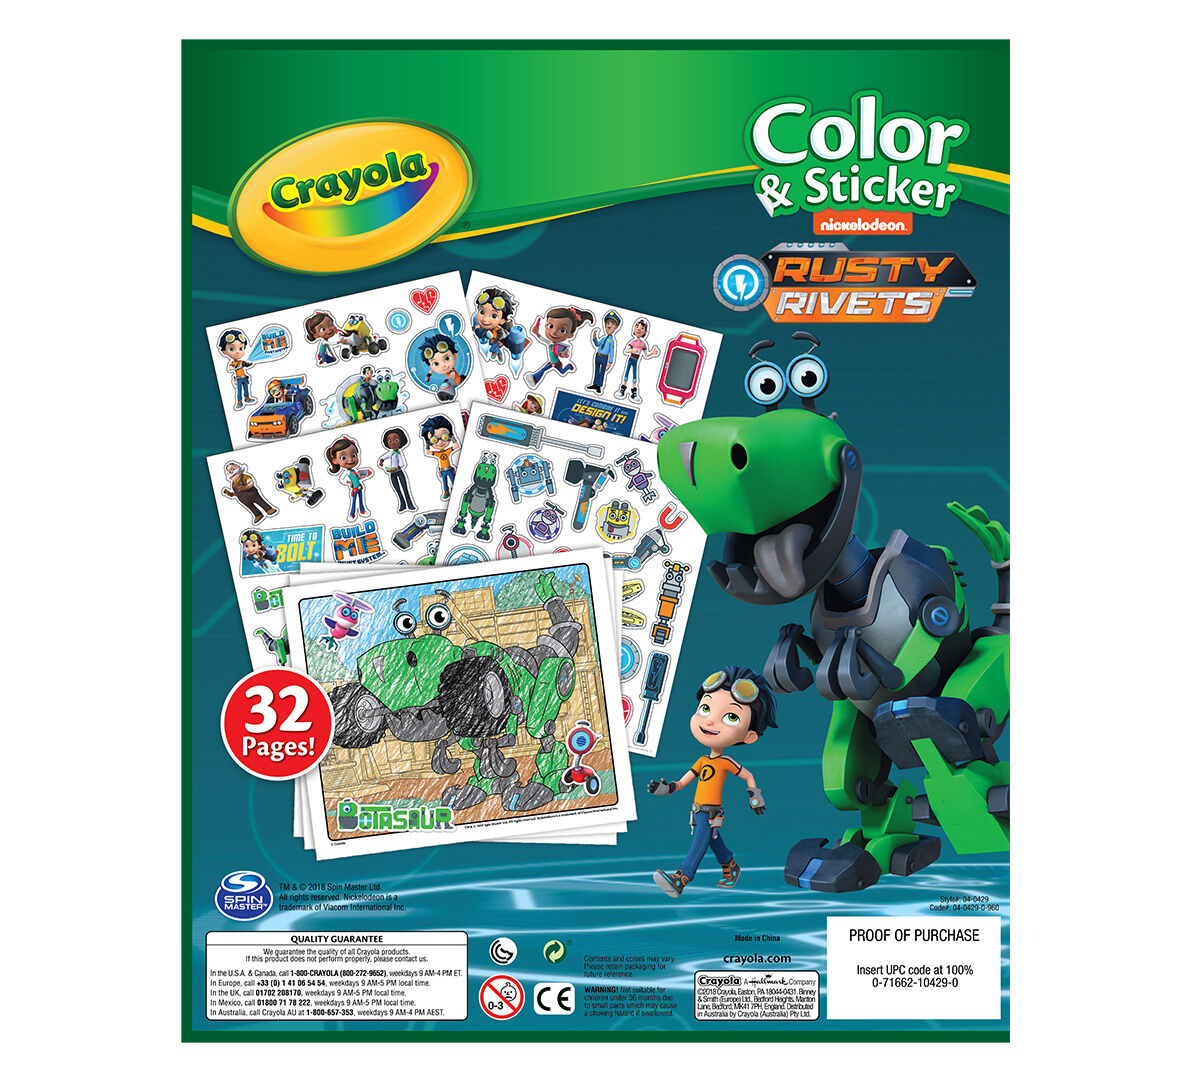 Crayola Rusty Rivets Color & Sticker Book, 32 Nickelodeon Coloring ...